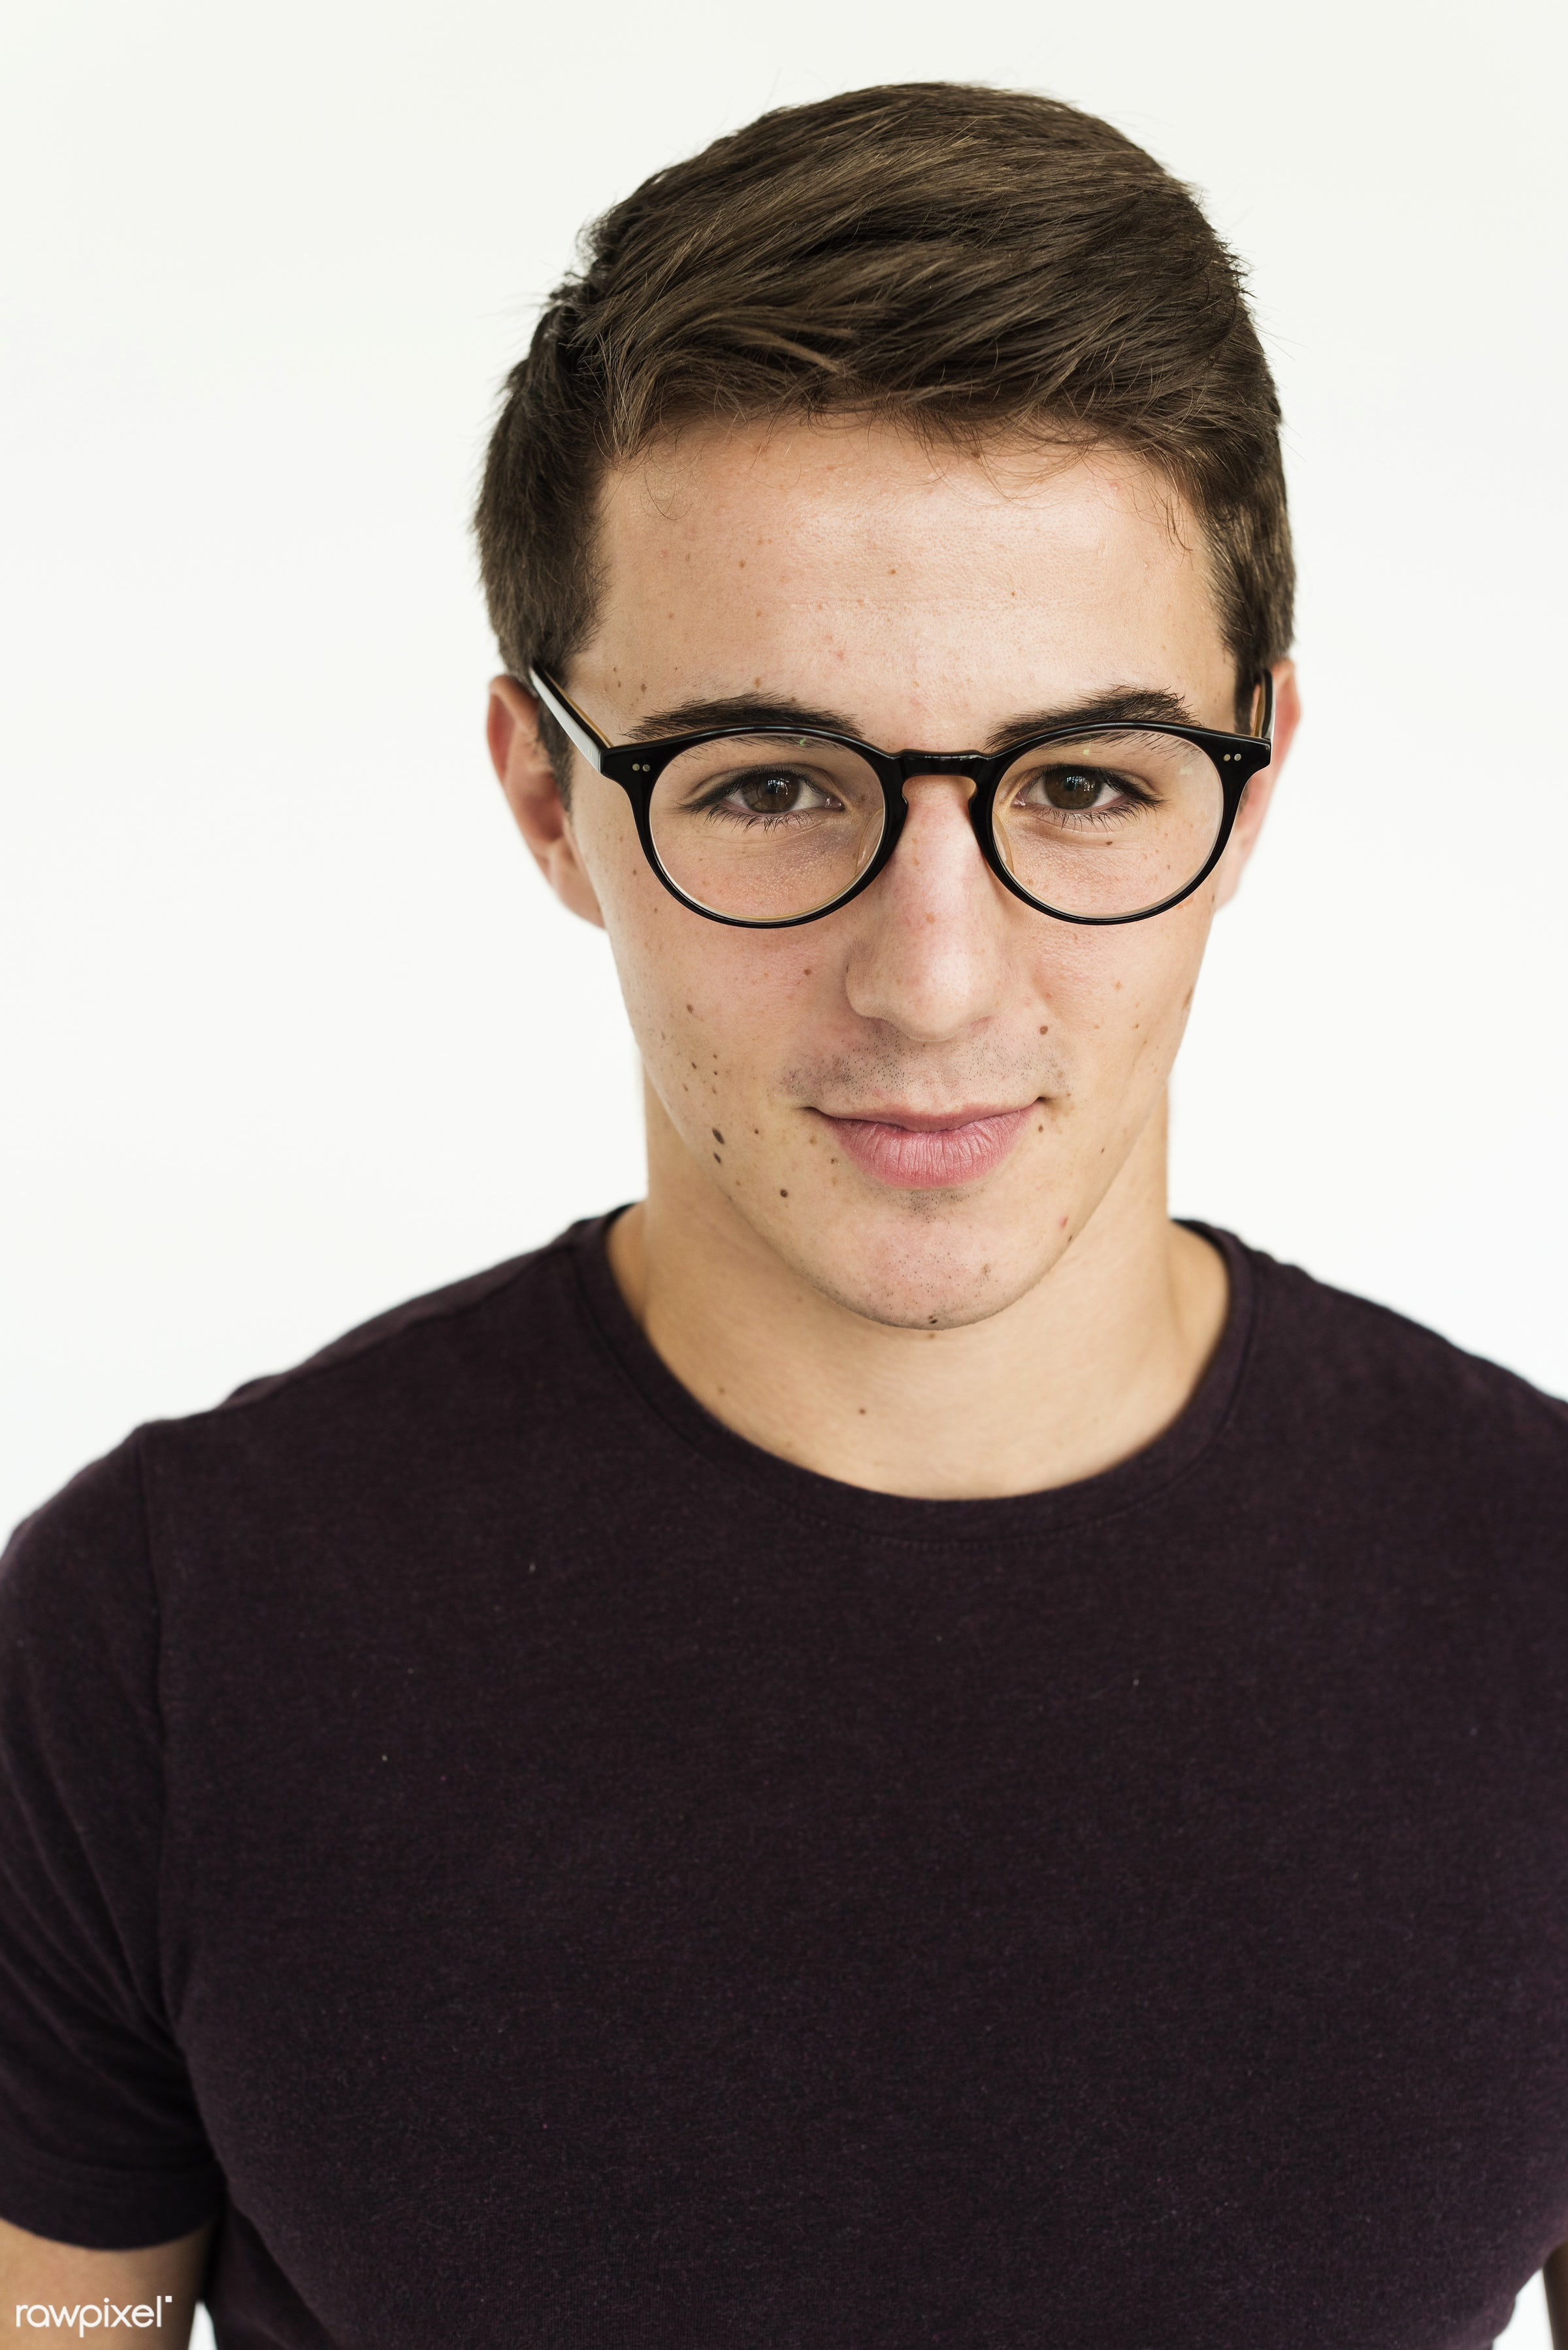 expression, studio, person, glasses, isolated on white, nice, people, positivity, caucasian, cheerful, man, isolated, guy,...